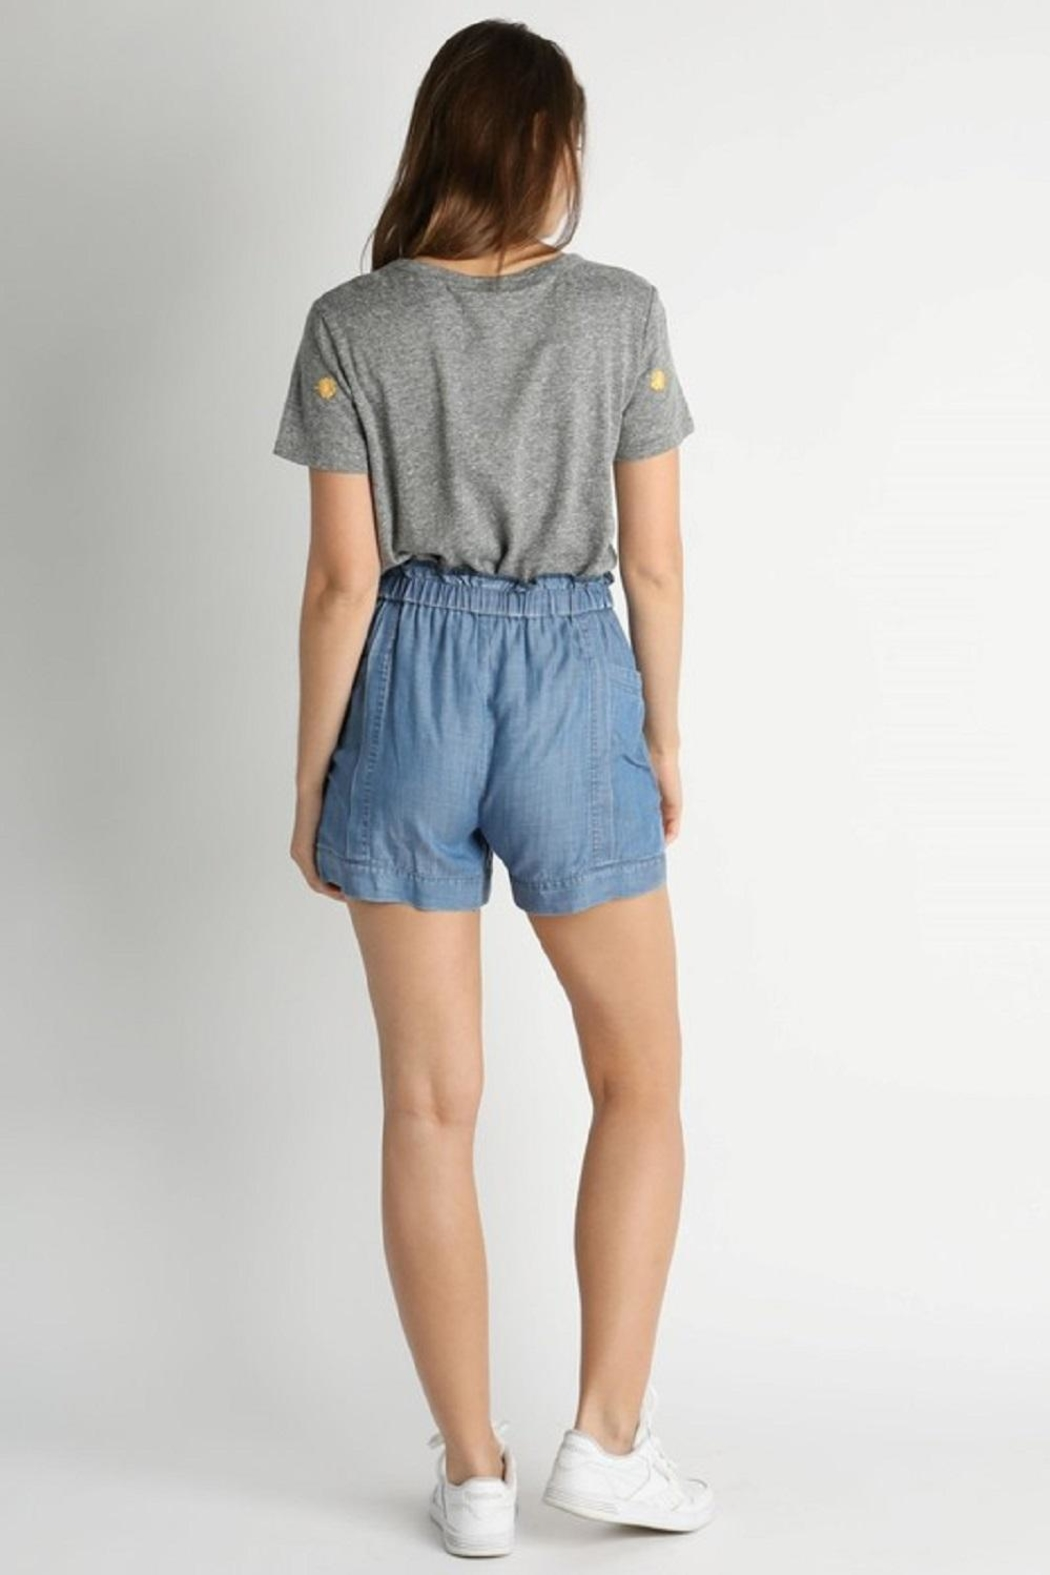 Current Air Elastic-Waist Tencil Shorts - Side Cropped Image